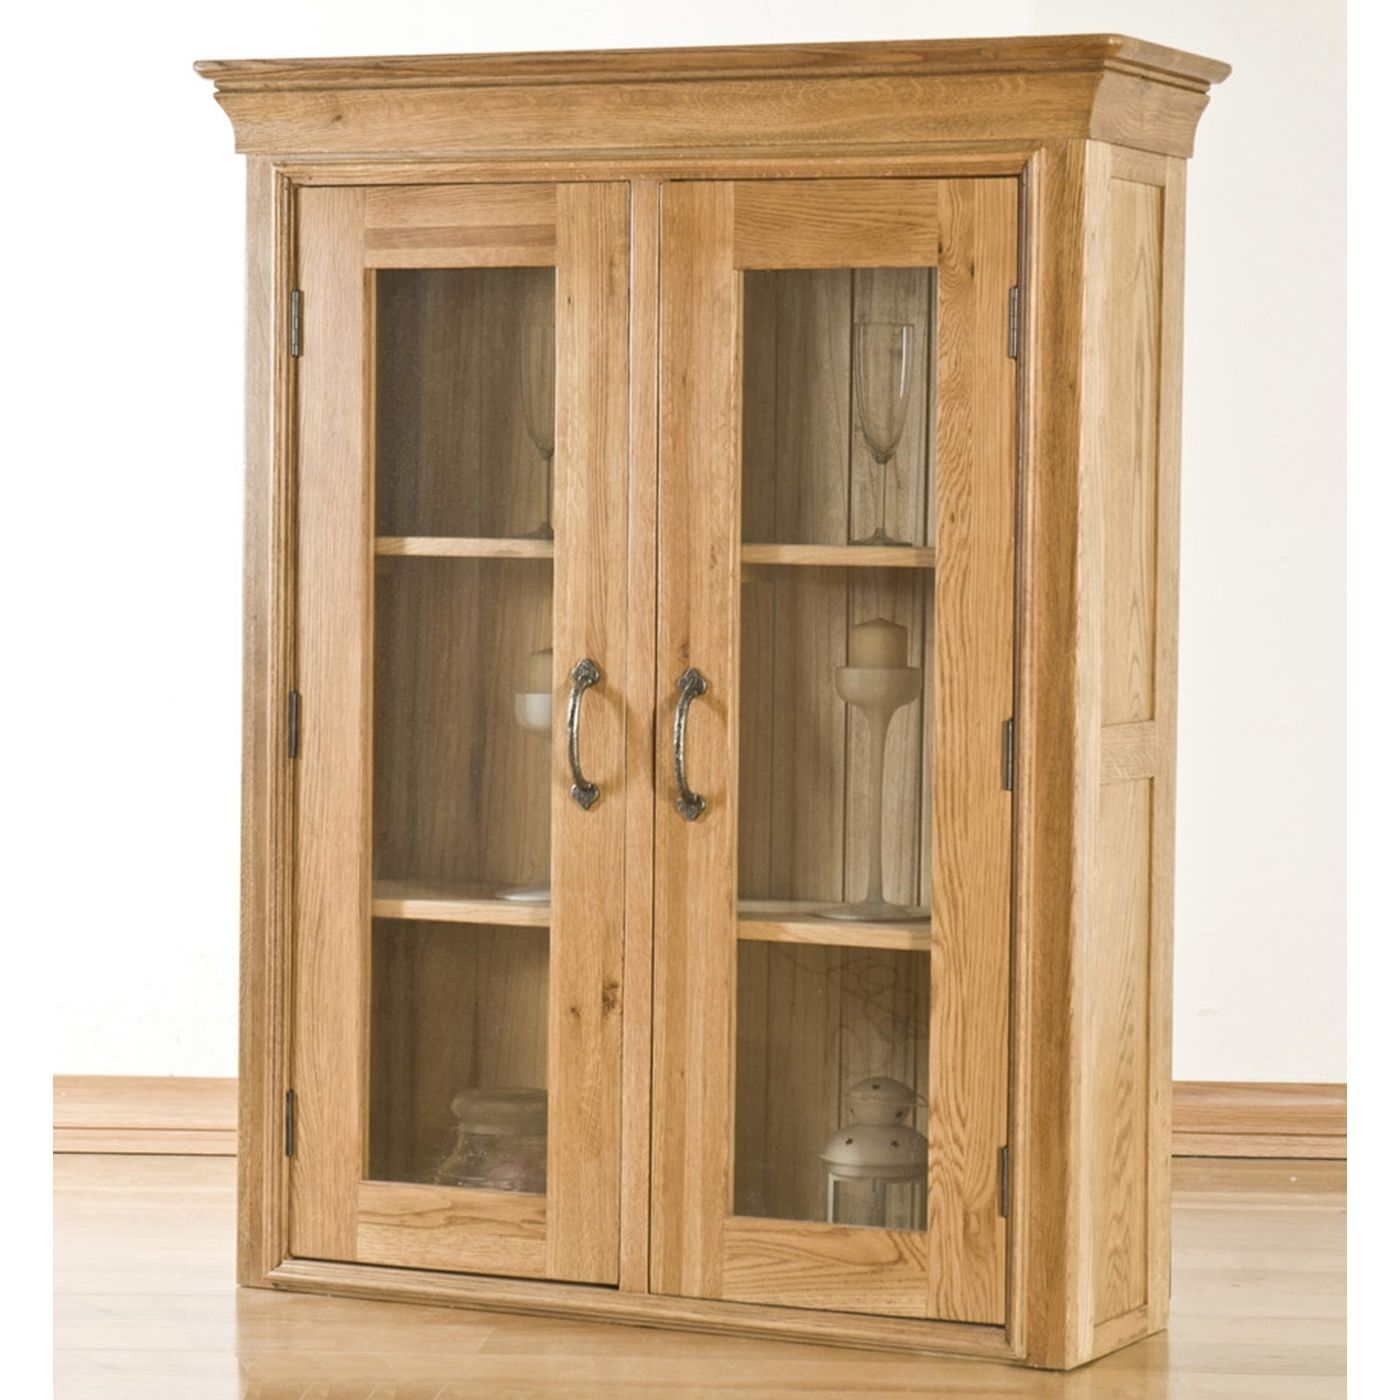 Solid Oak Furniture: Toulon Solid Oak Furniture Small Dining Room China Display